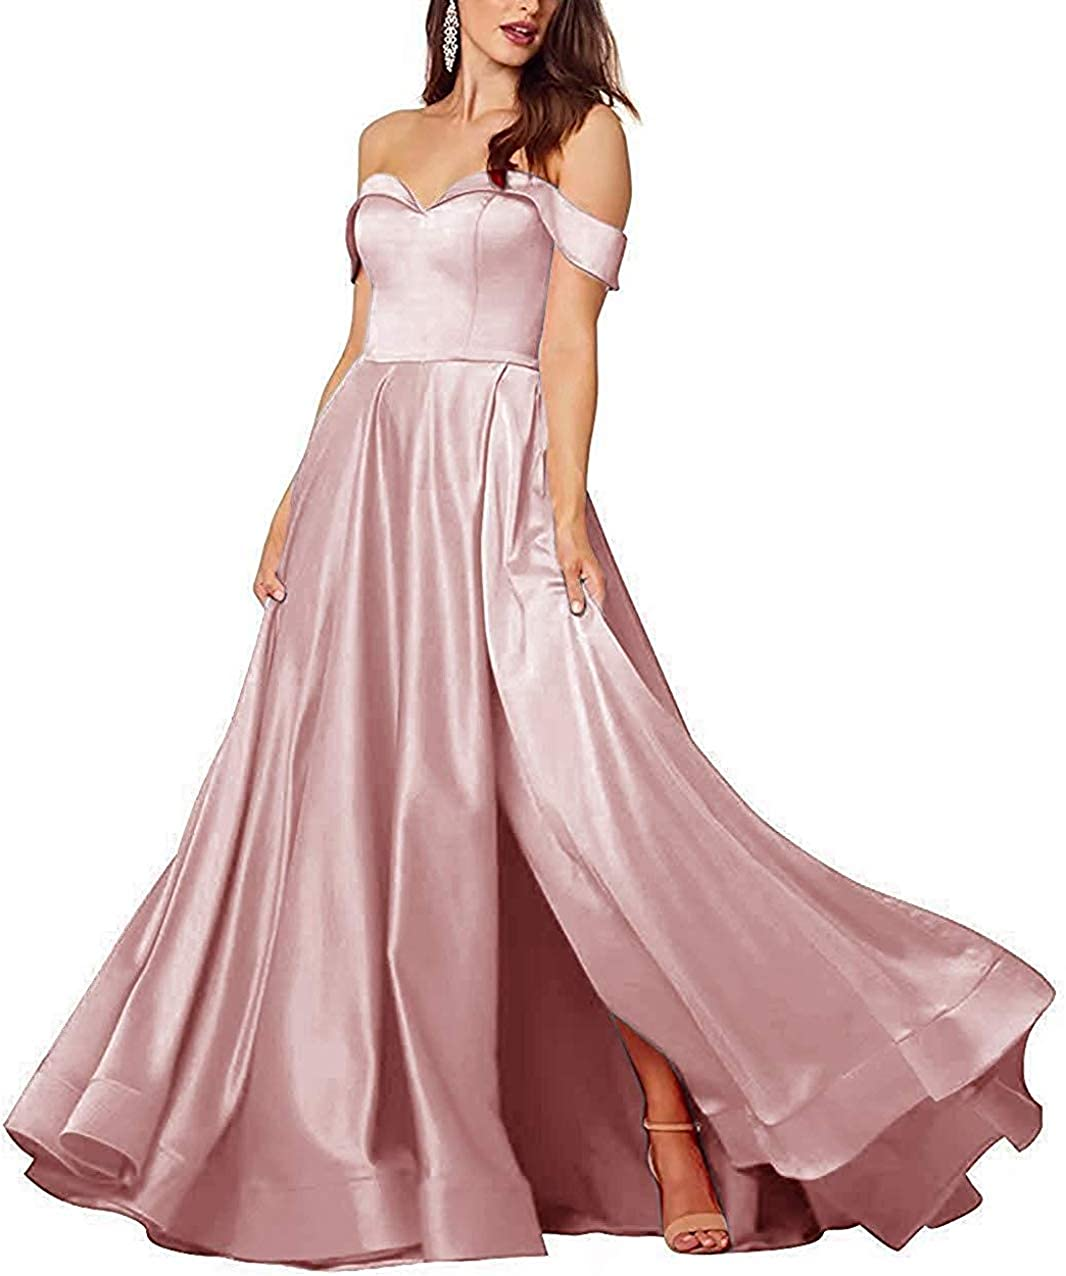 XSWPL Womens s High Low Wedding Dresses For Brides Formal Wedding Party Gowns